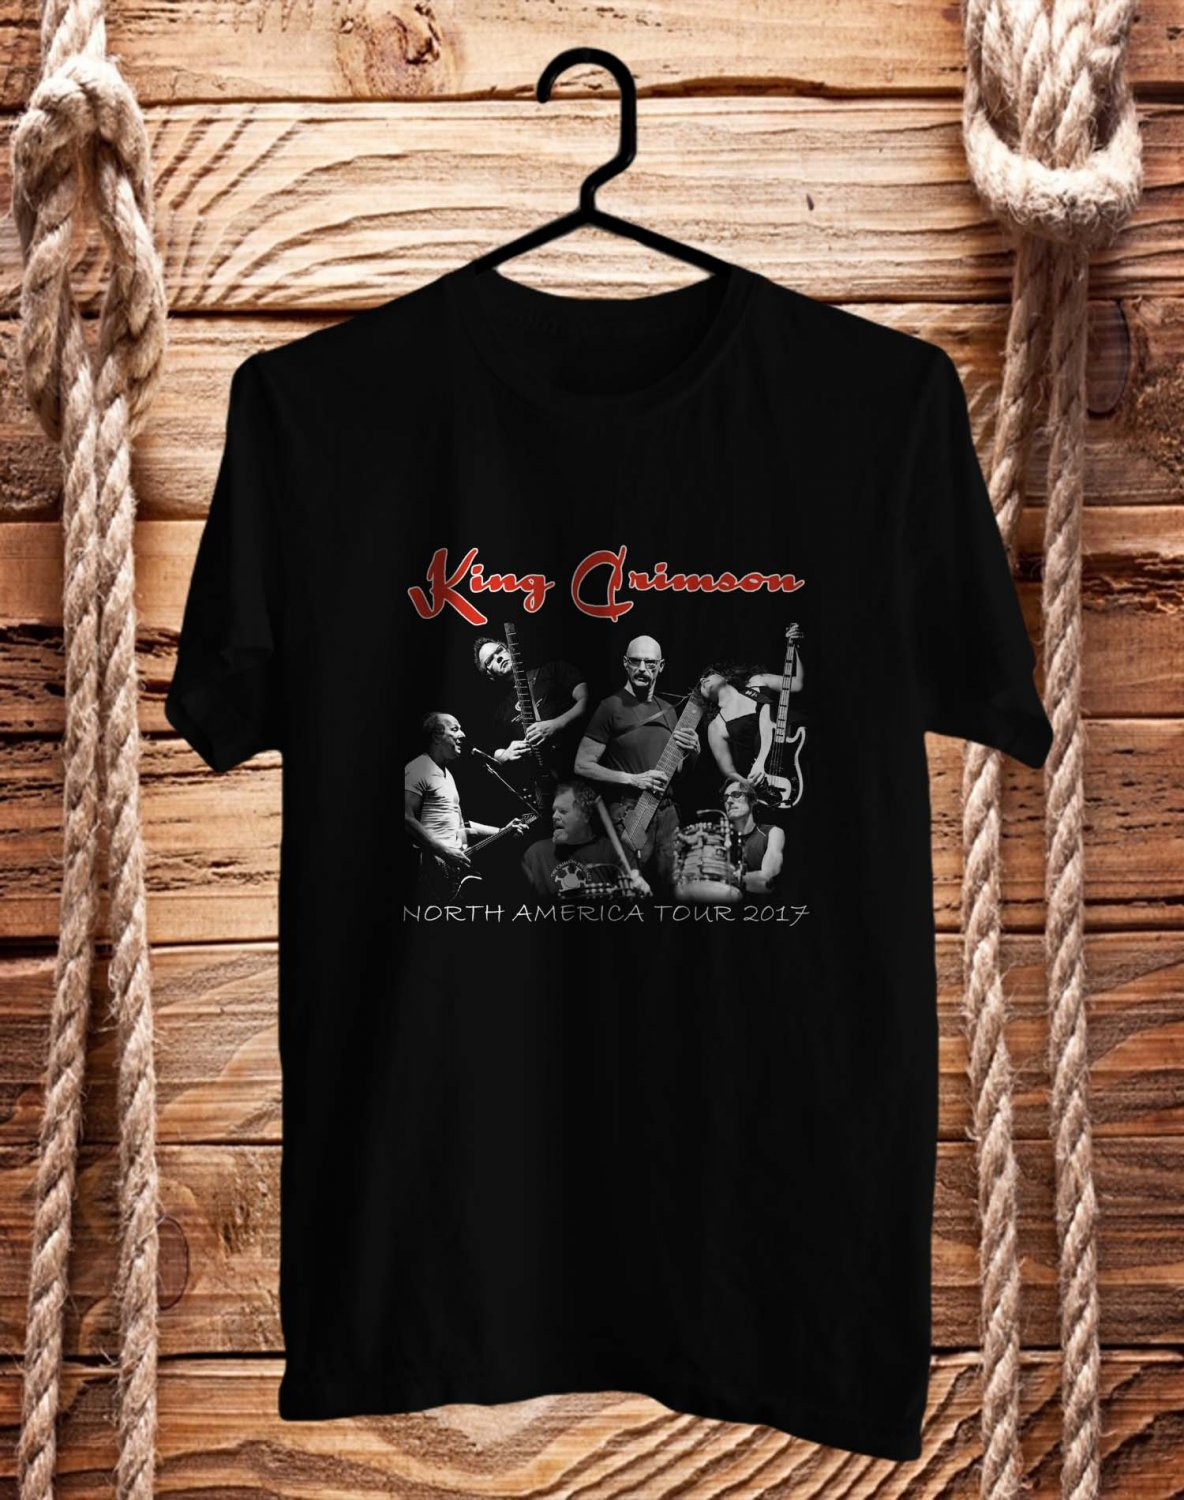 King Crimson Radial Action tour 2017 Logo Black Tee's  Front Side by Complexart c1